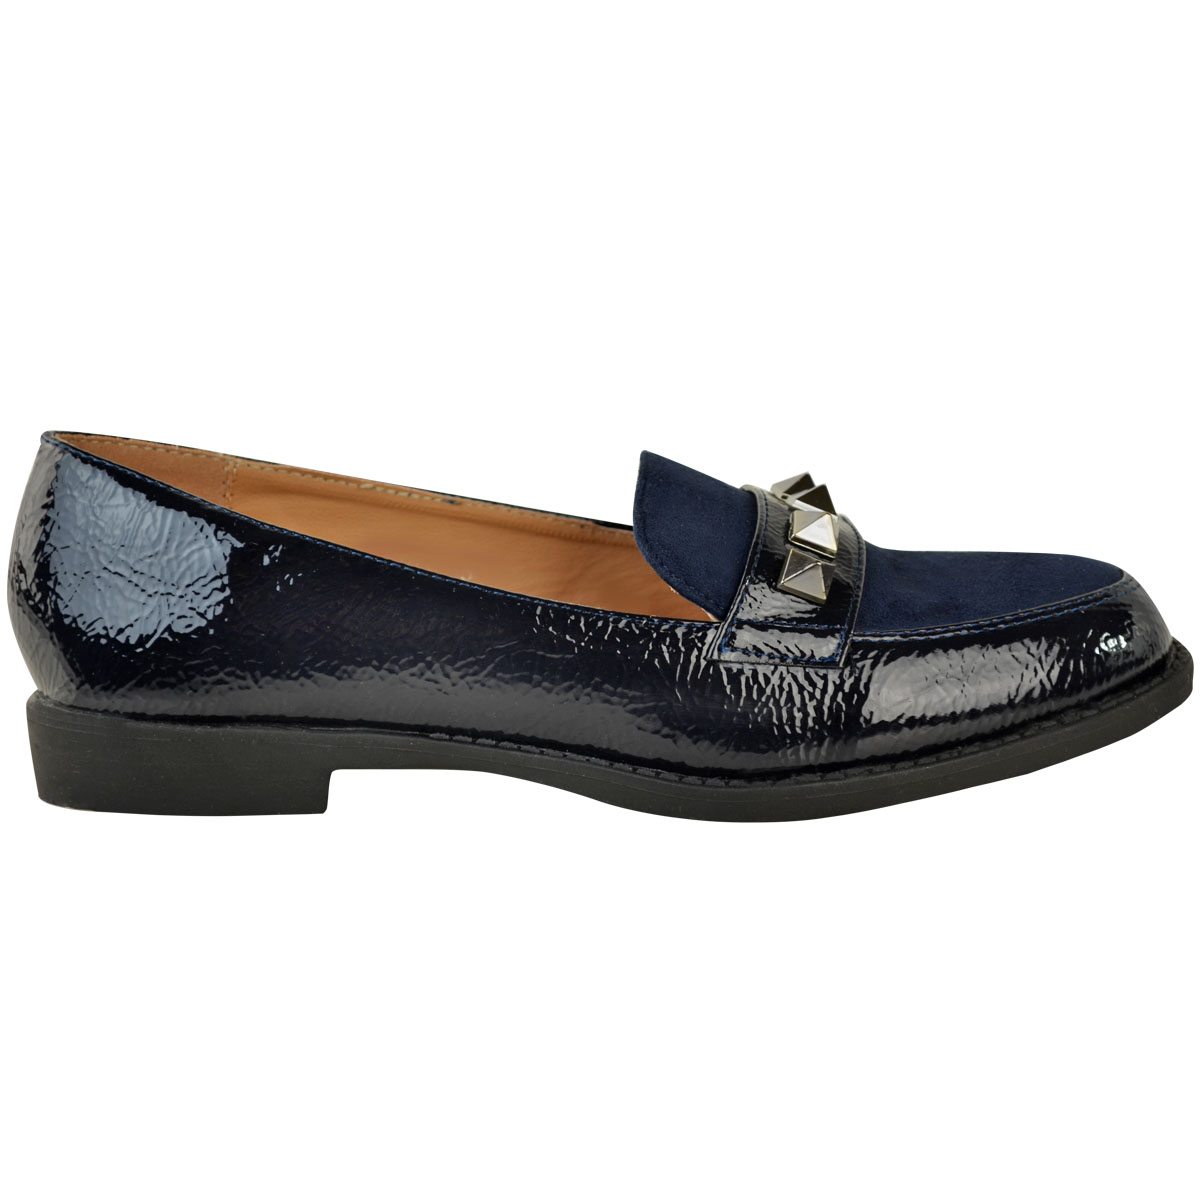 Womens-Ladies-Loafers-Brogues-Pumps-Casual-School-Office-Comfy-Work-Flats-Size thumbnail 11